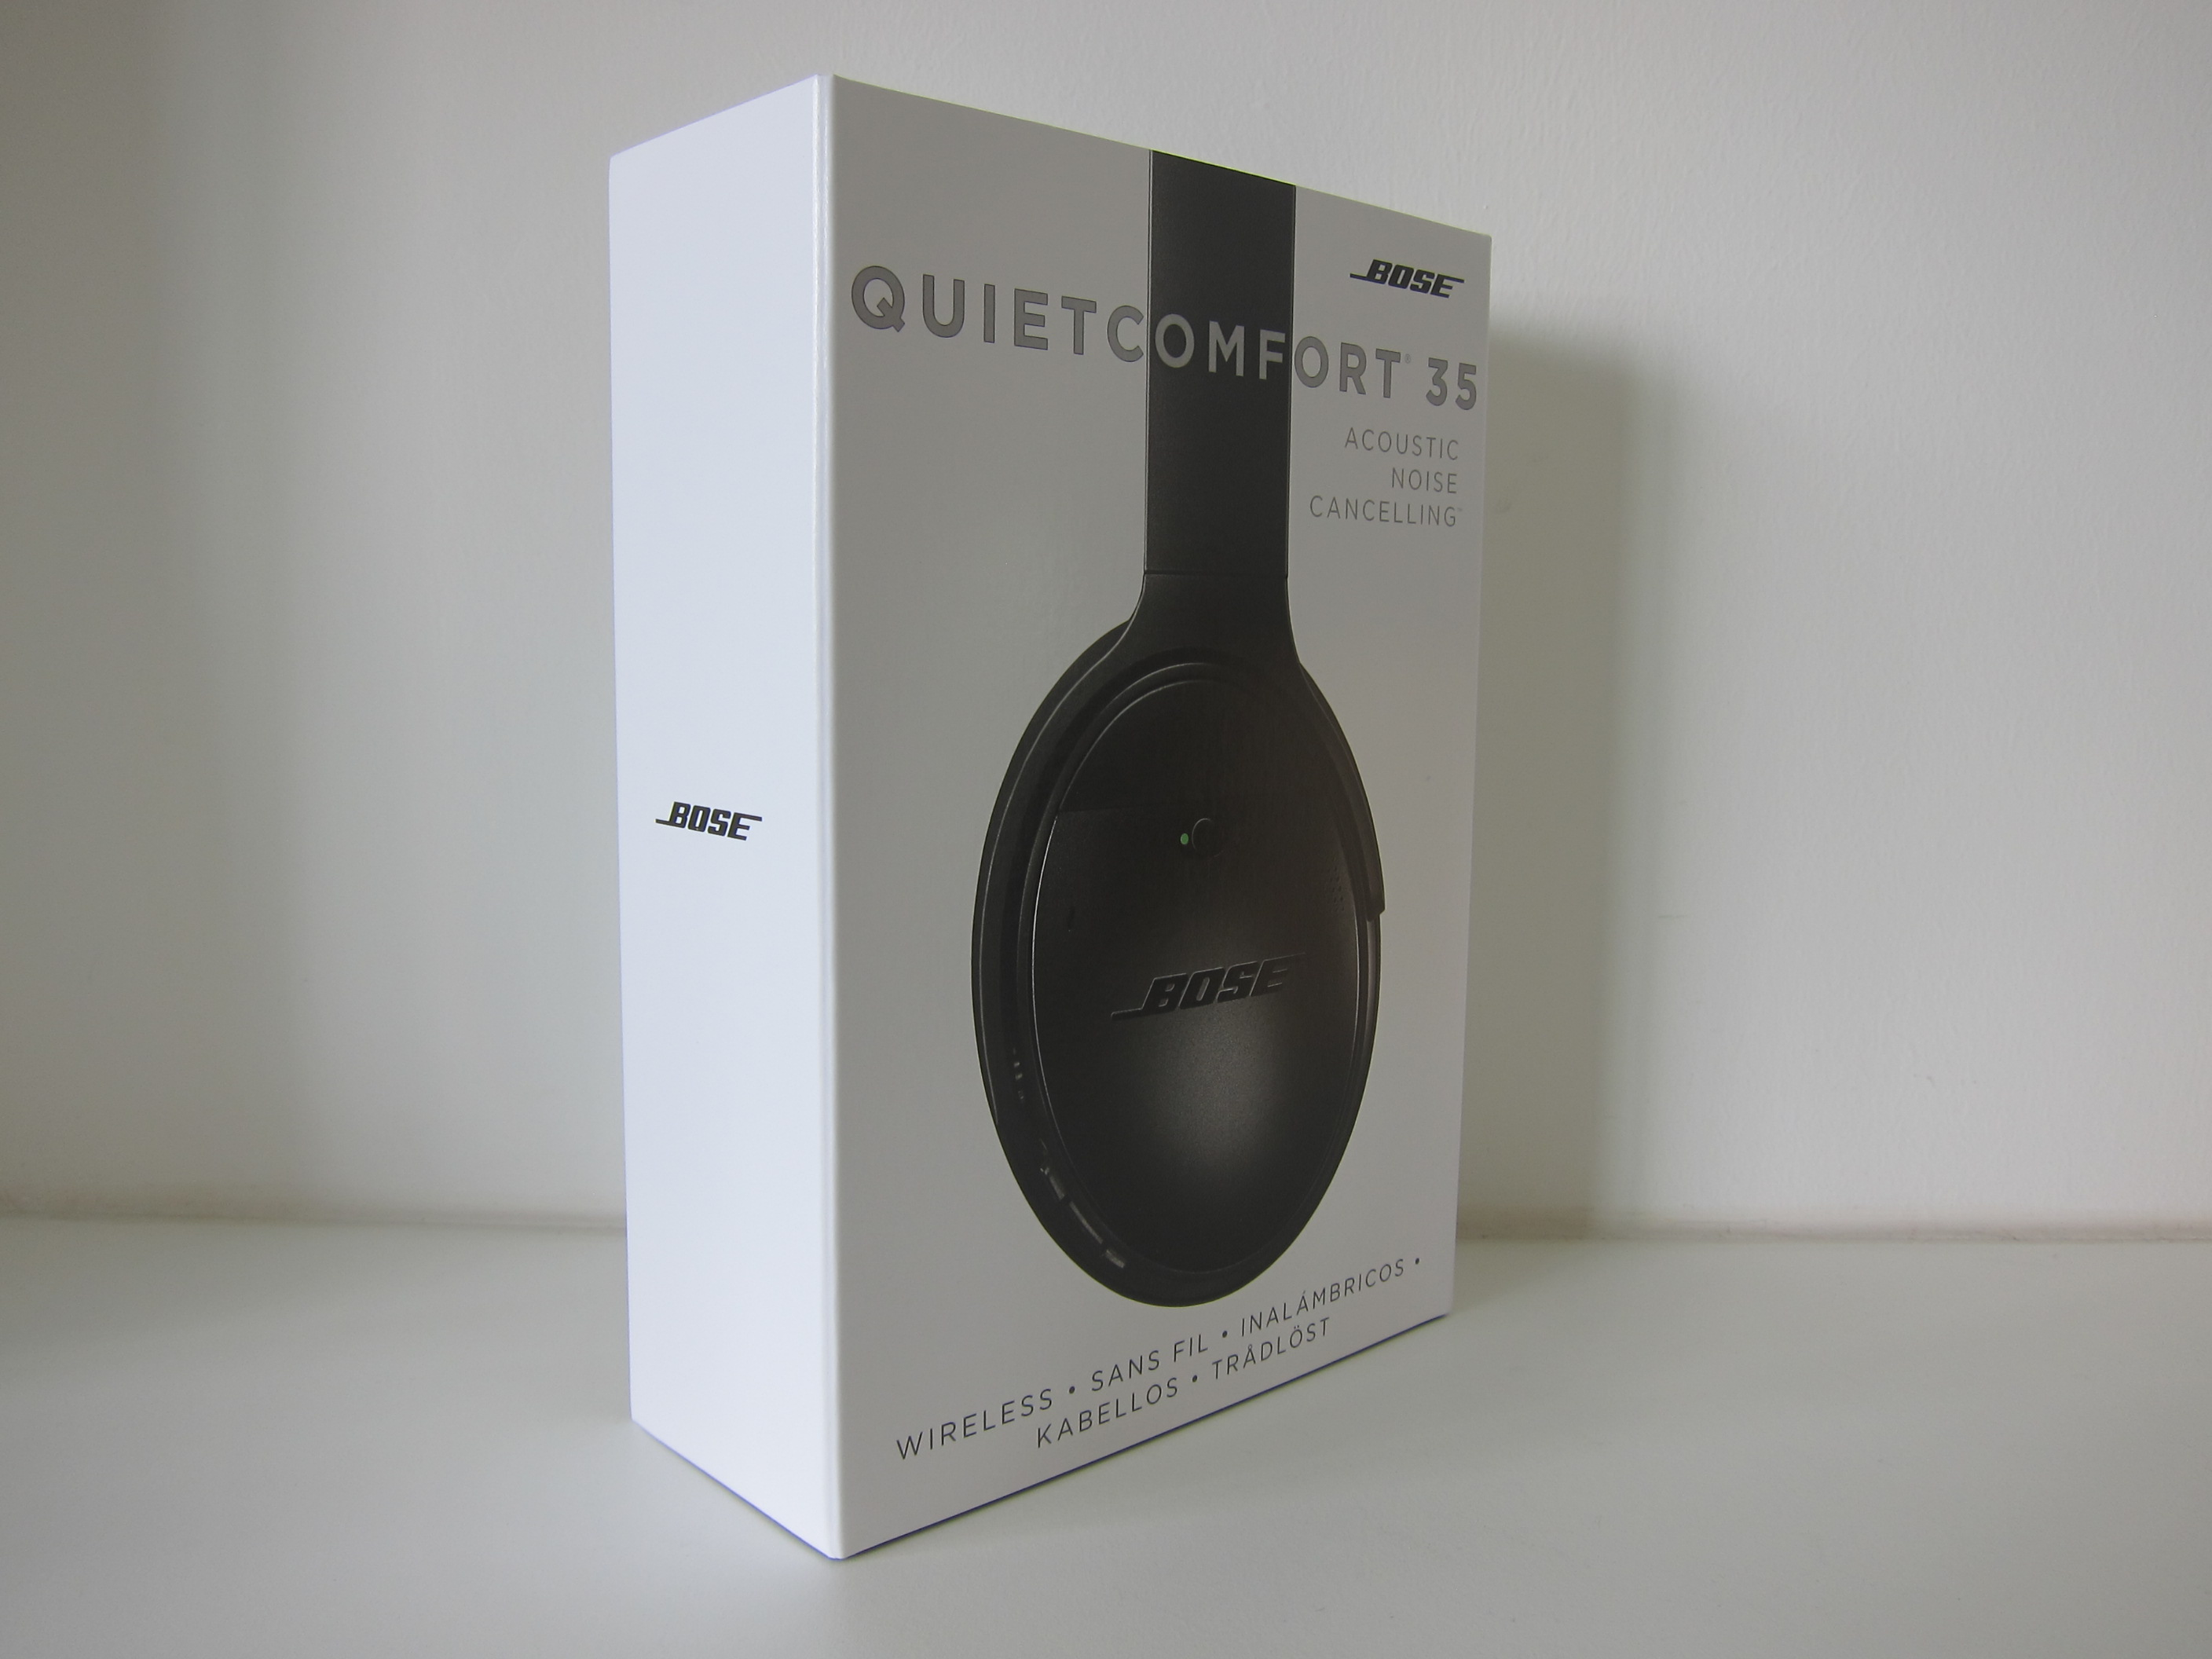 Bose QuietComfort 35 (QC35) Acoustic Noise Cancelling Wireless ...